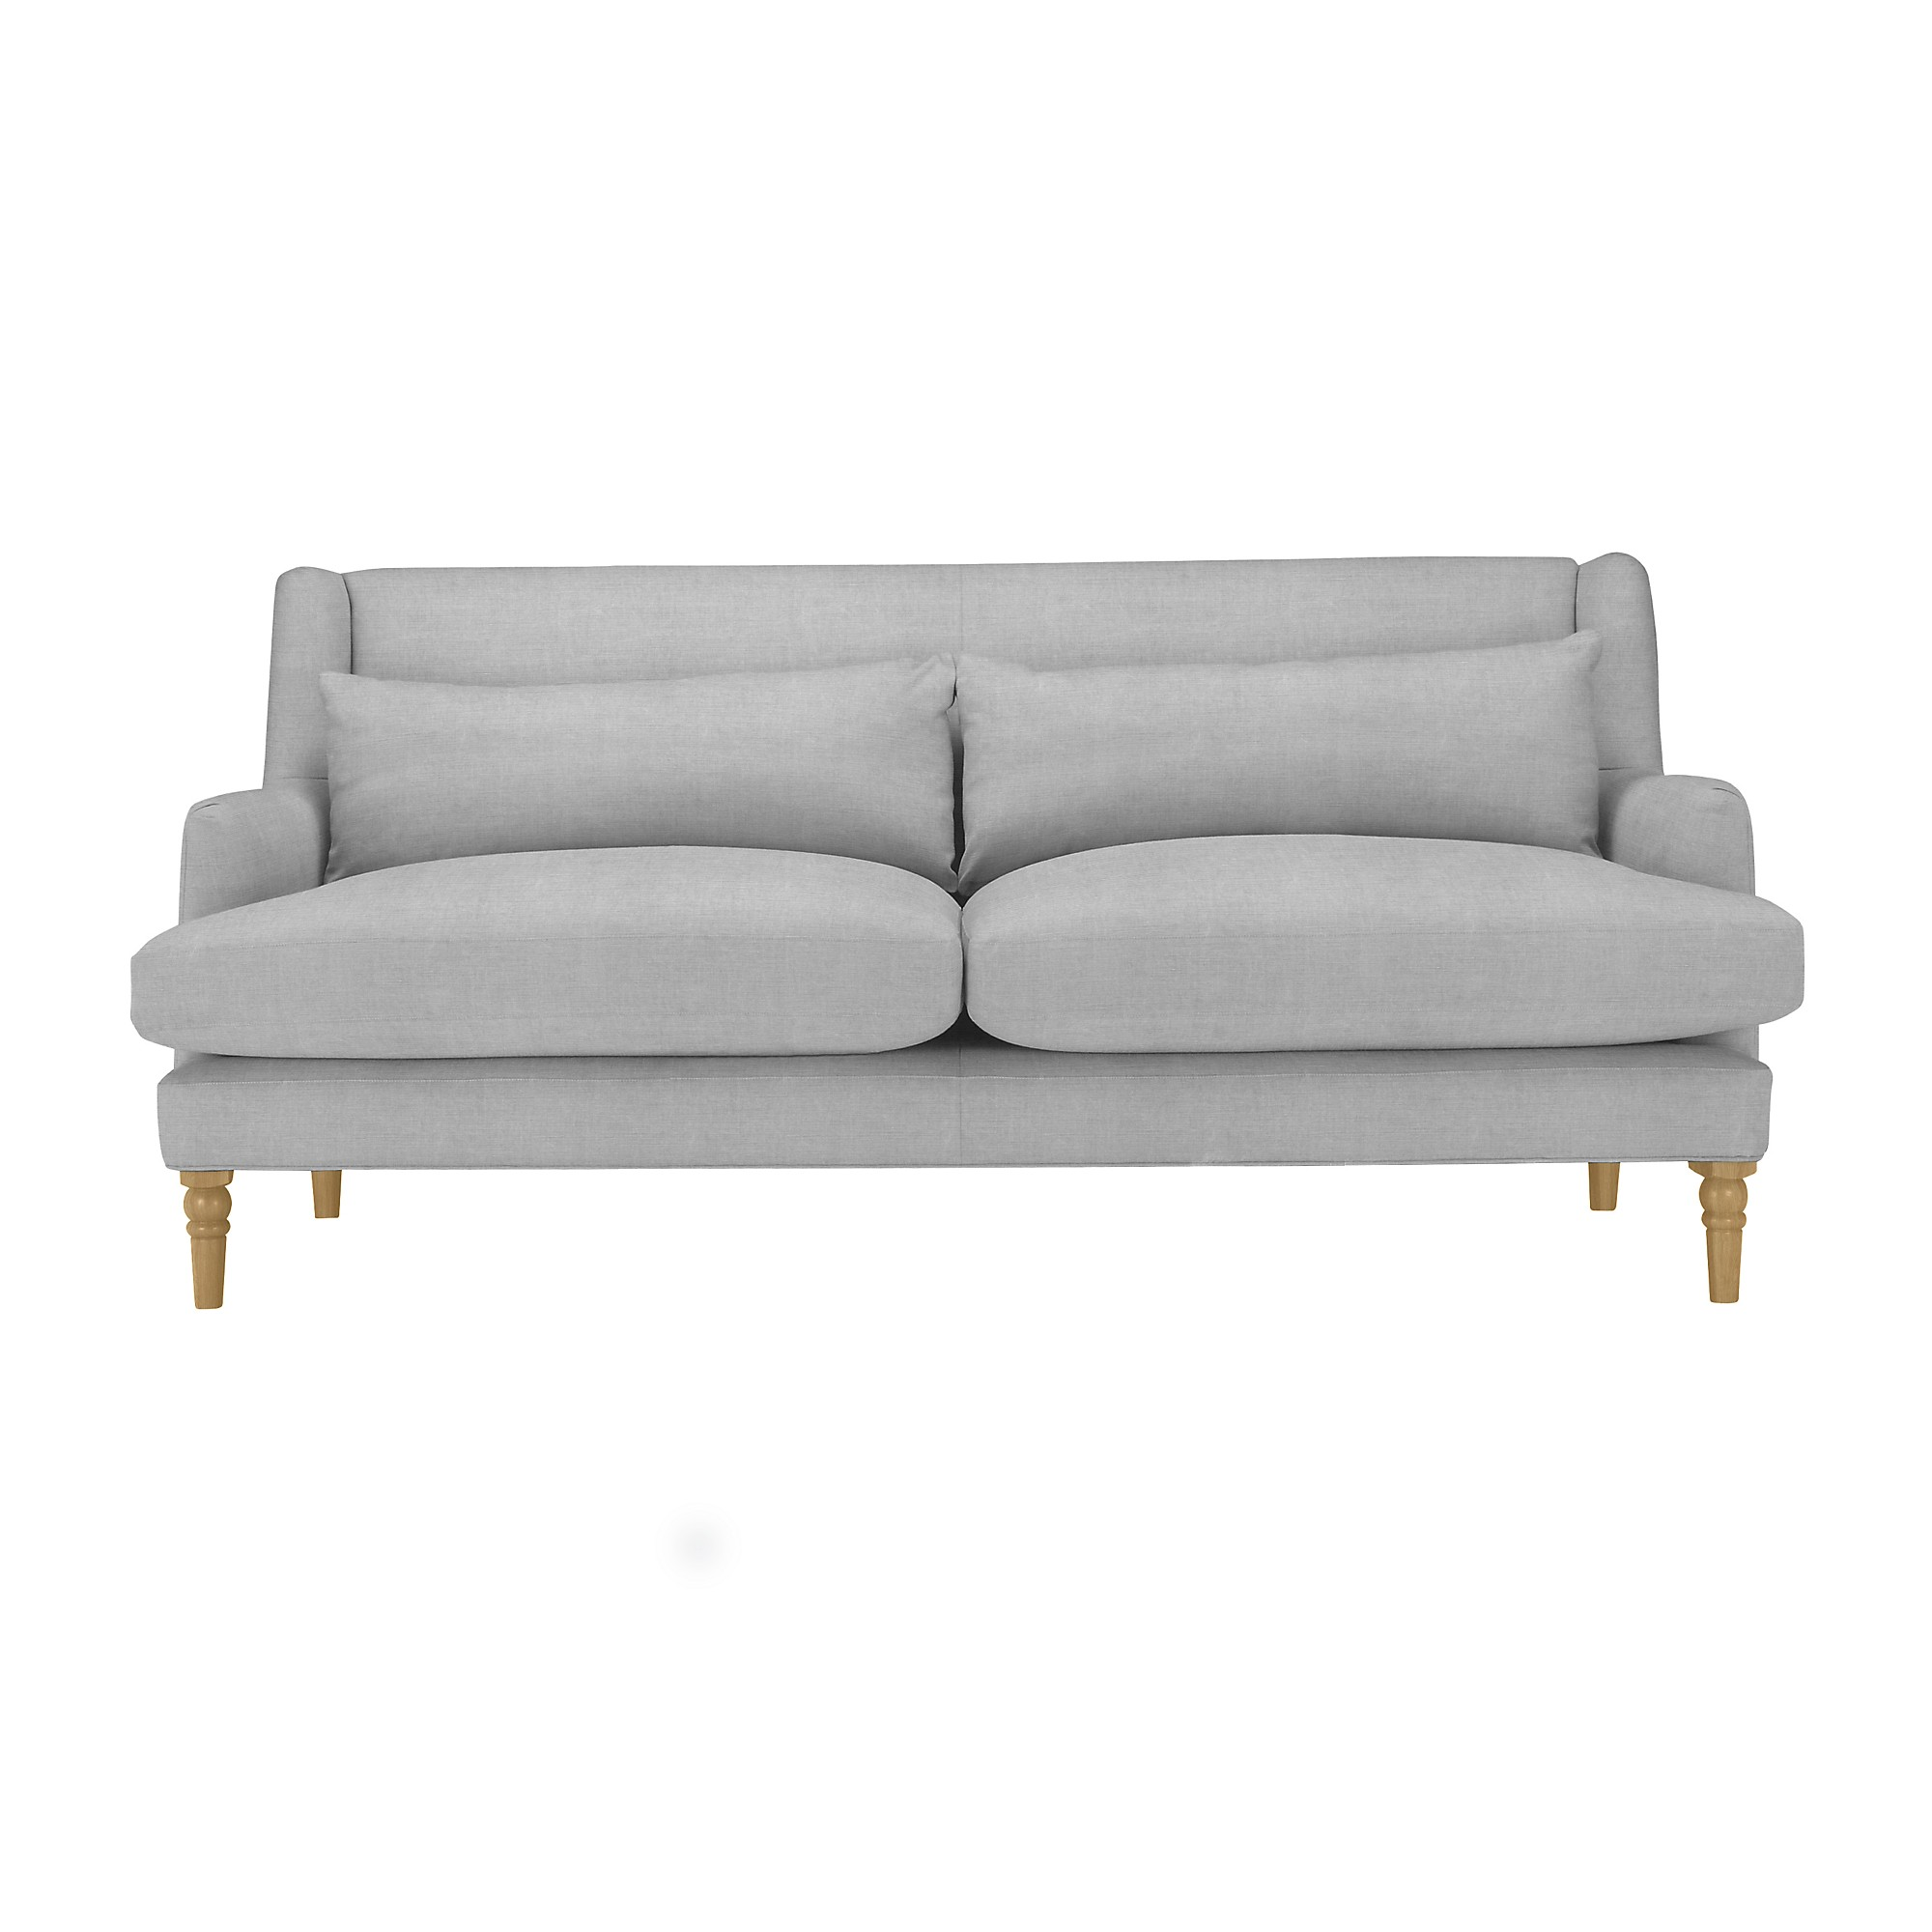 John Lewis Sofa Delivery Images 80 Best Kitchen On